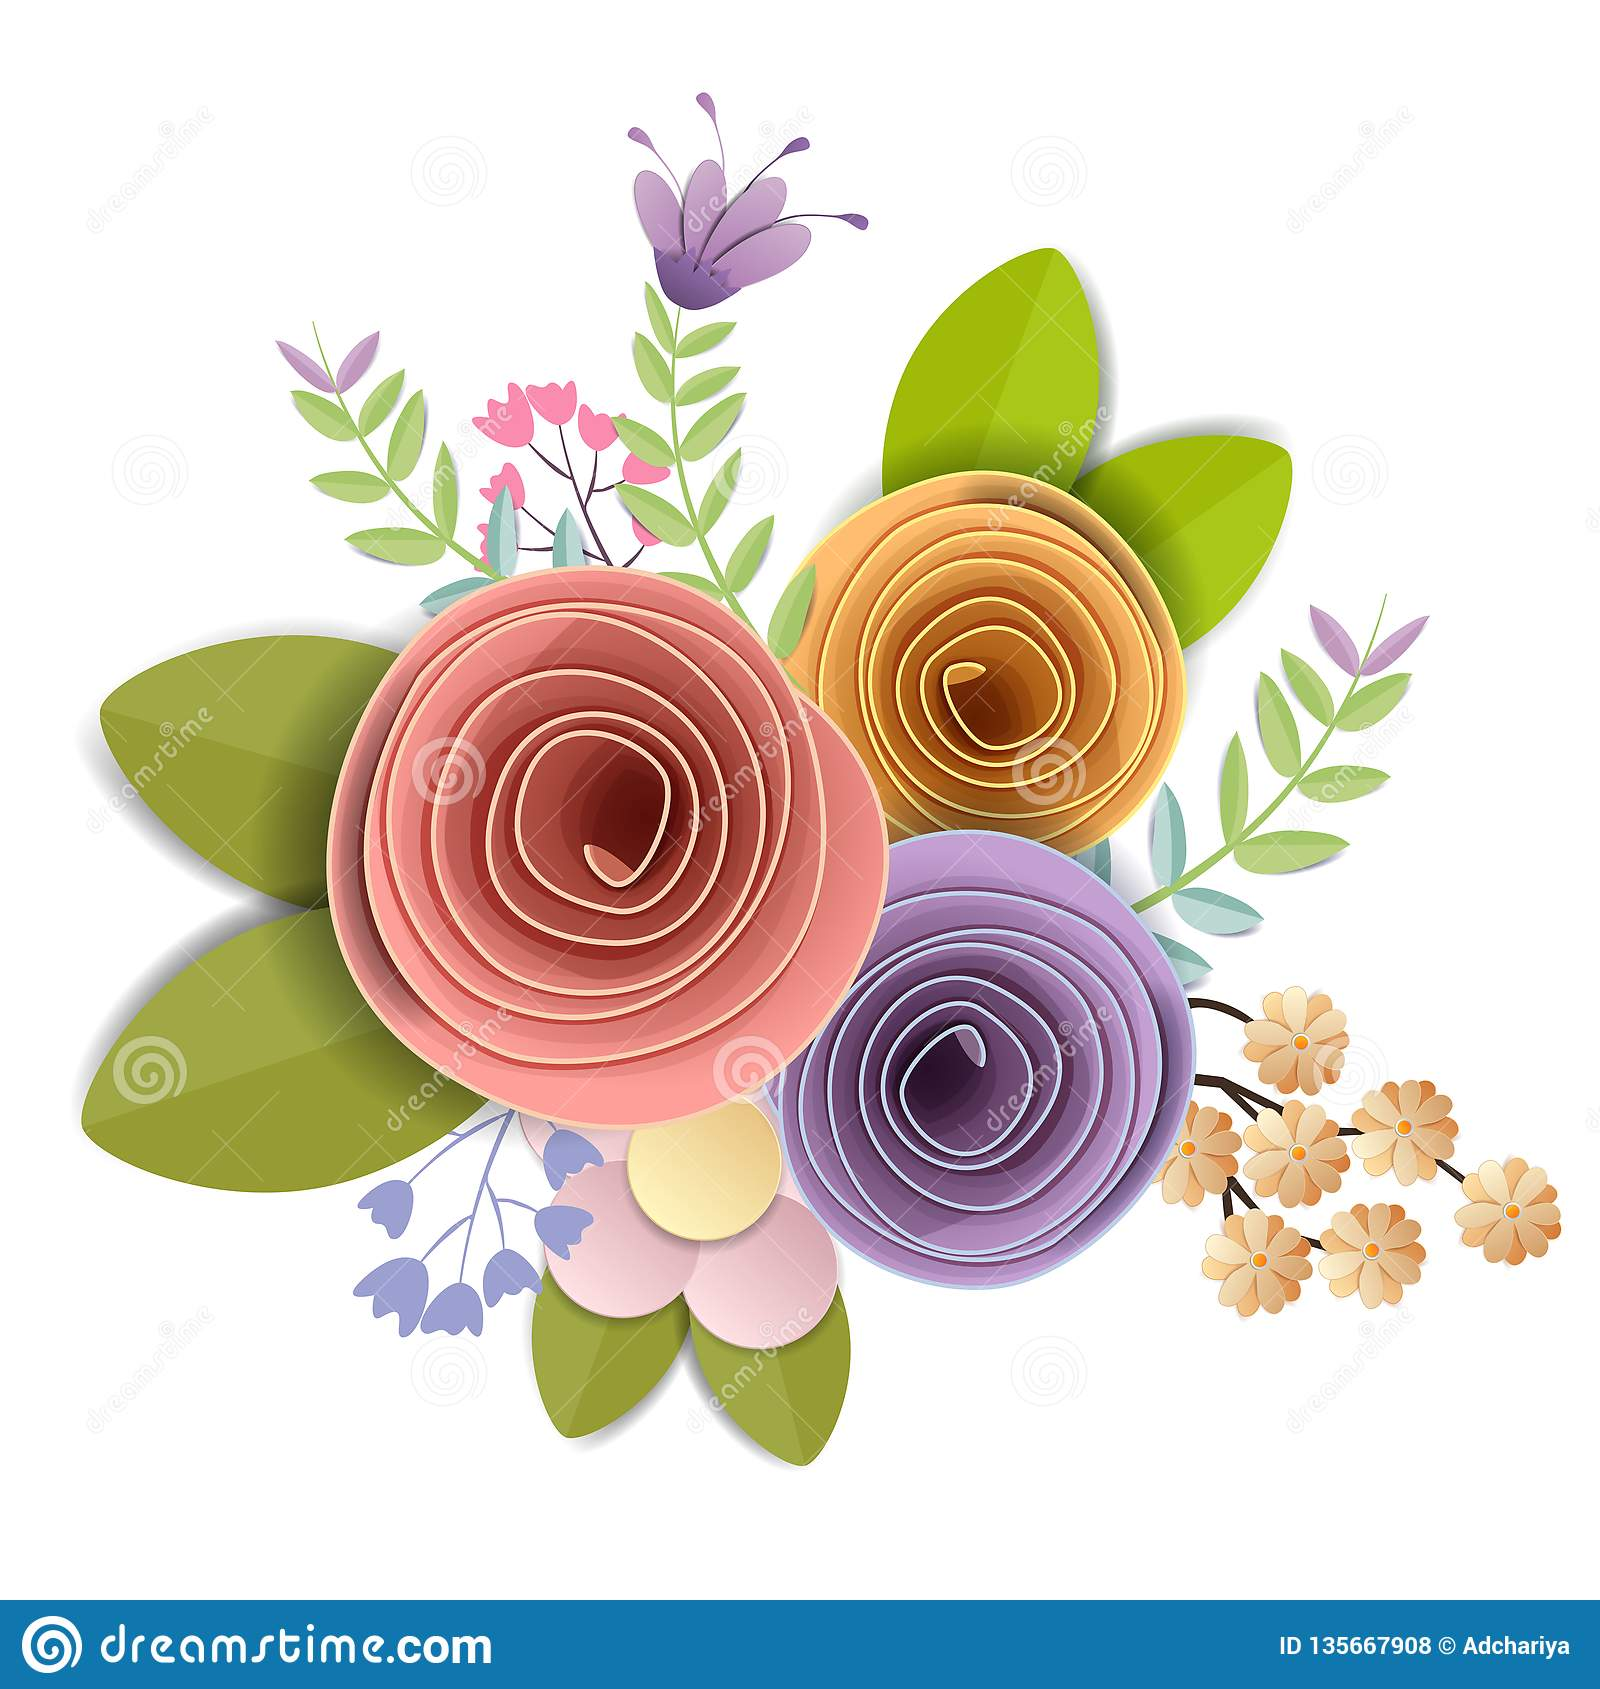 Vector And Illustration Design Craft Paper Flowers Spring Autumn Wedding And Valentine Festive Floral Bouquet Bright Fall Stock Vector Illustration Of Beautiful Refresh 135667908